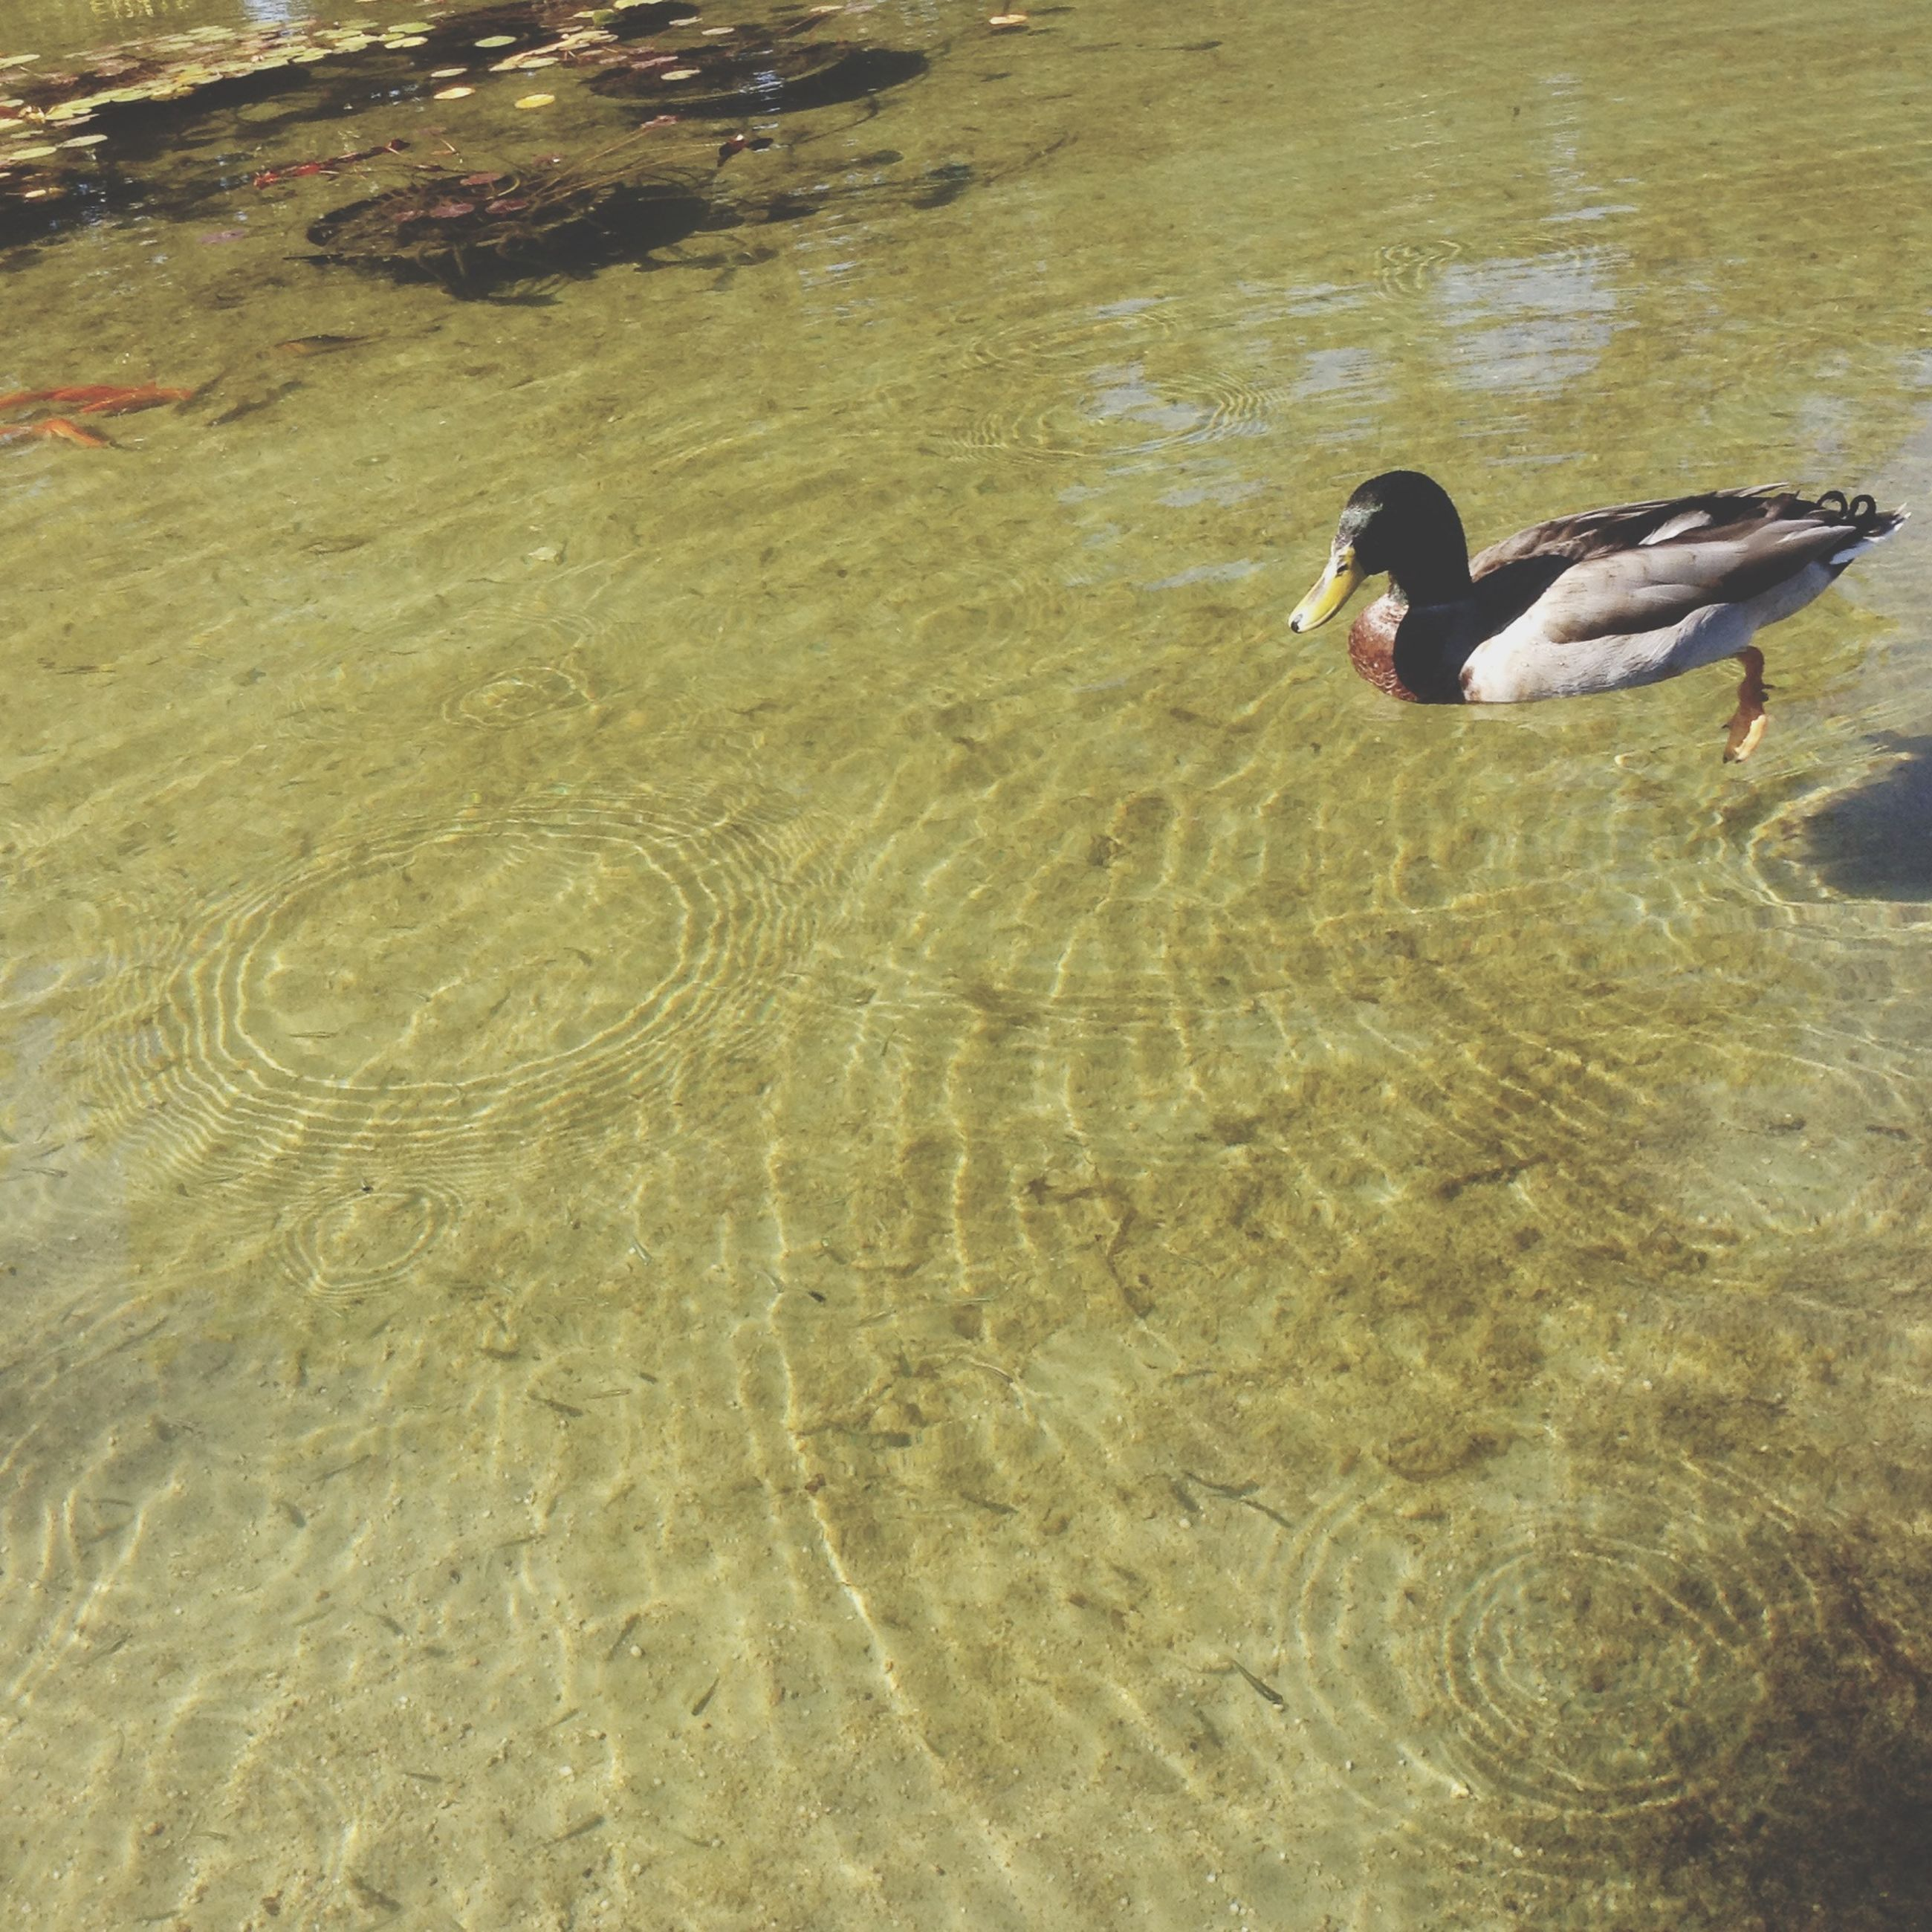 water, animal themes, rippled, lake, swimming, high angle view, waterfront, lifestyles, leisure activity, bird, animals in the wild, nature, wildlife, men, duck, reflection, day, outdoors